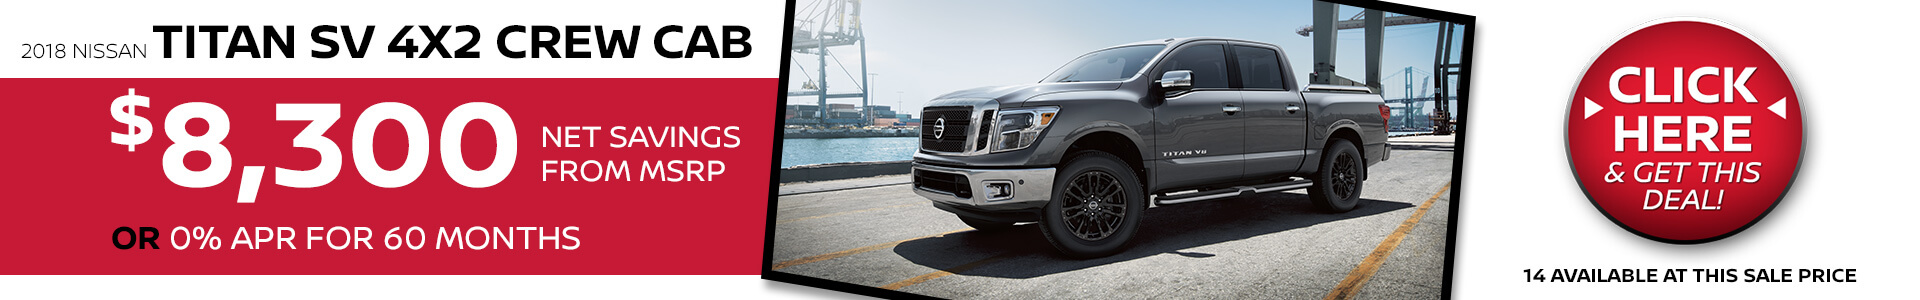 Nissan Titan $8,300 Net Savings From MSRP